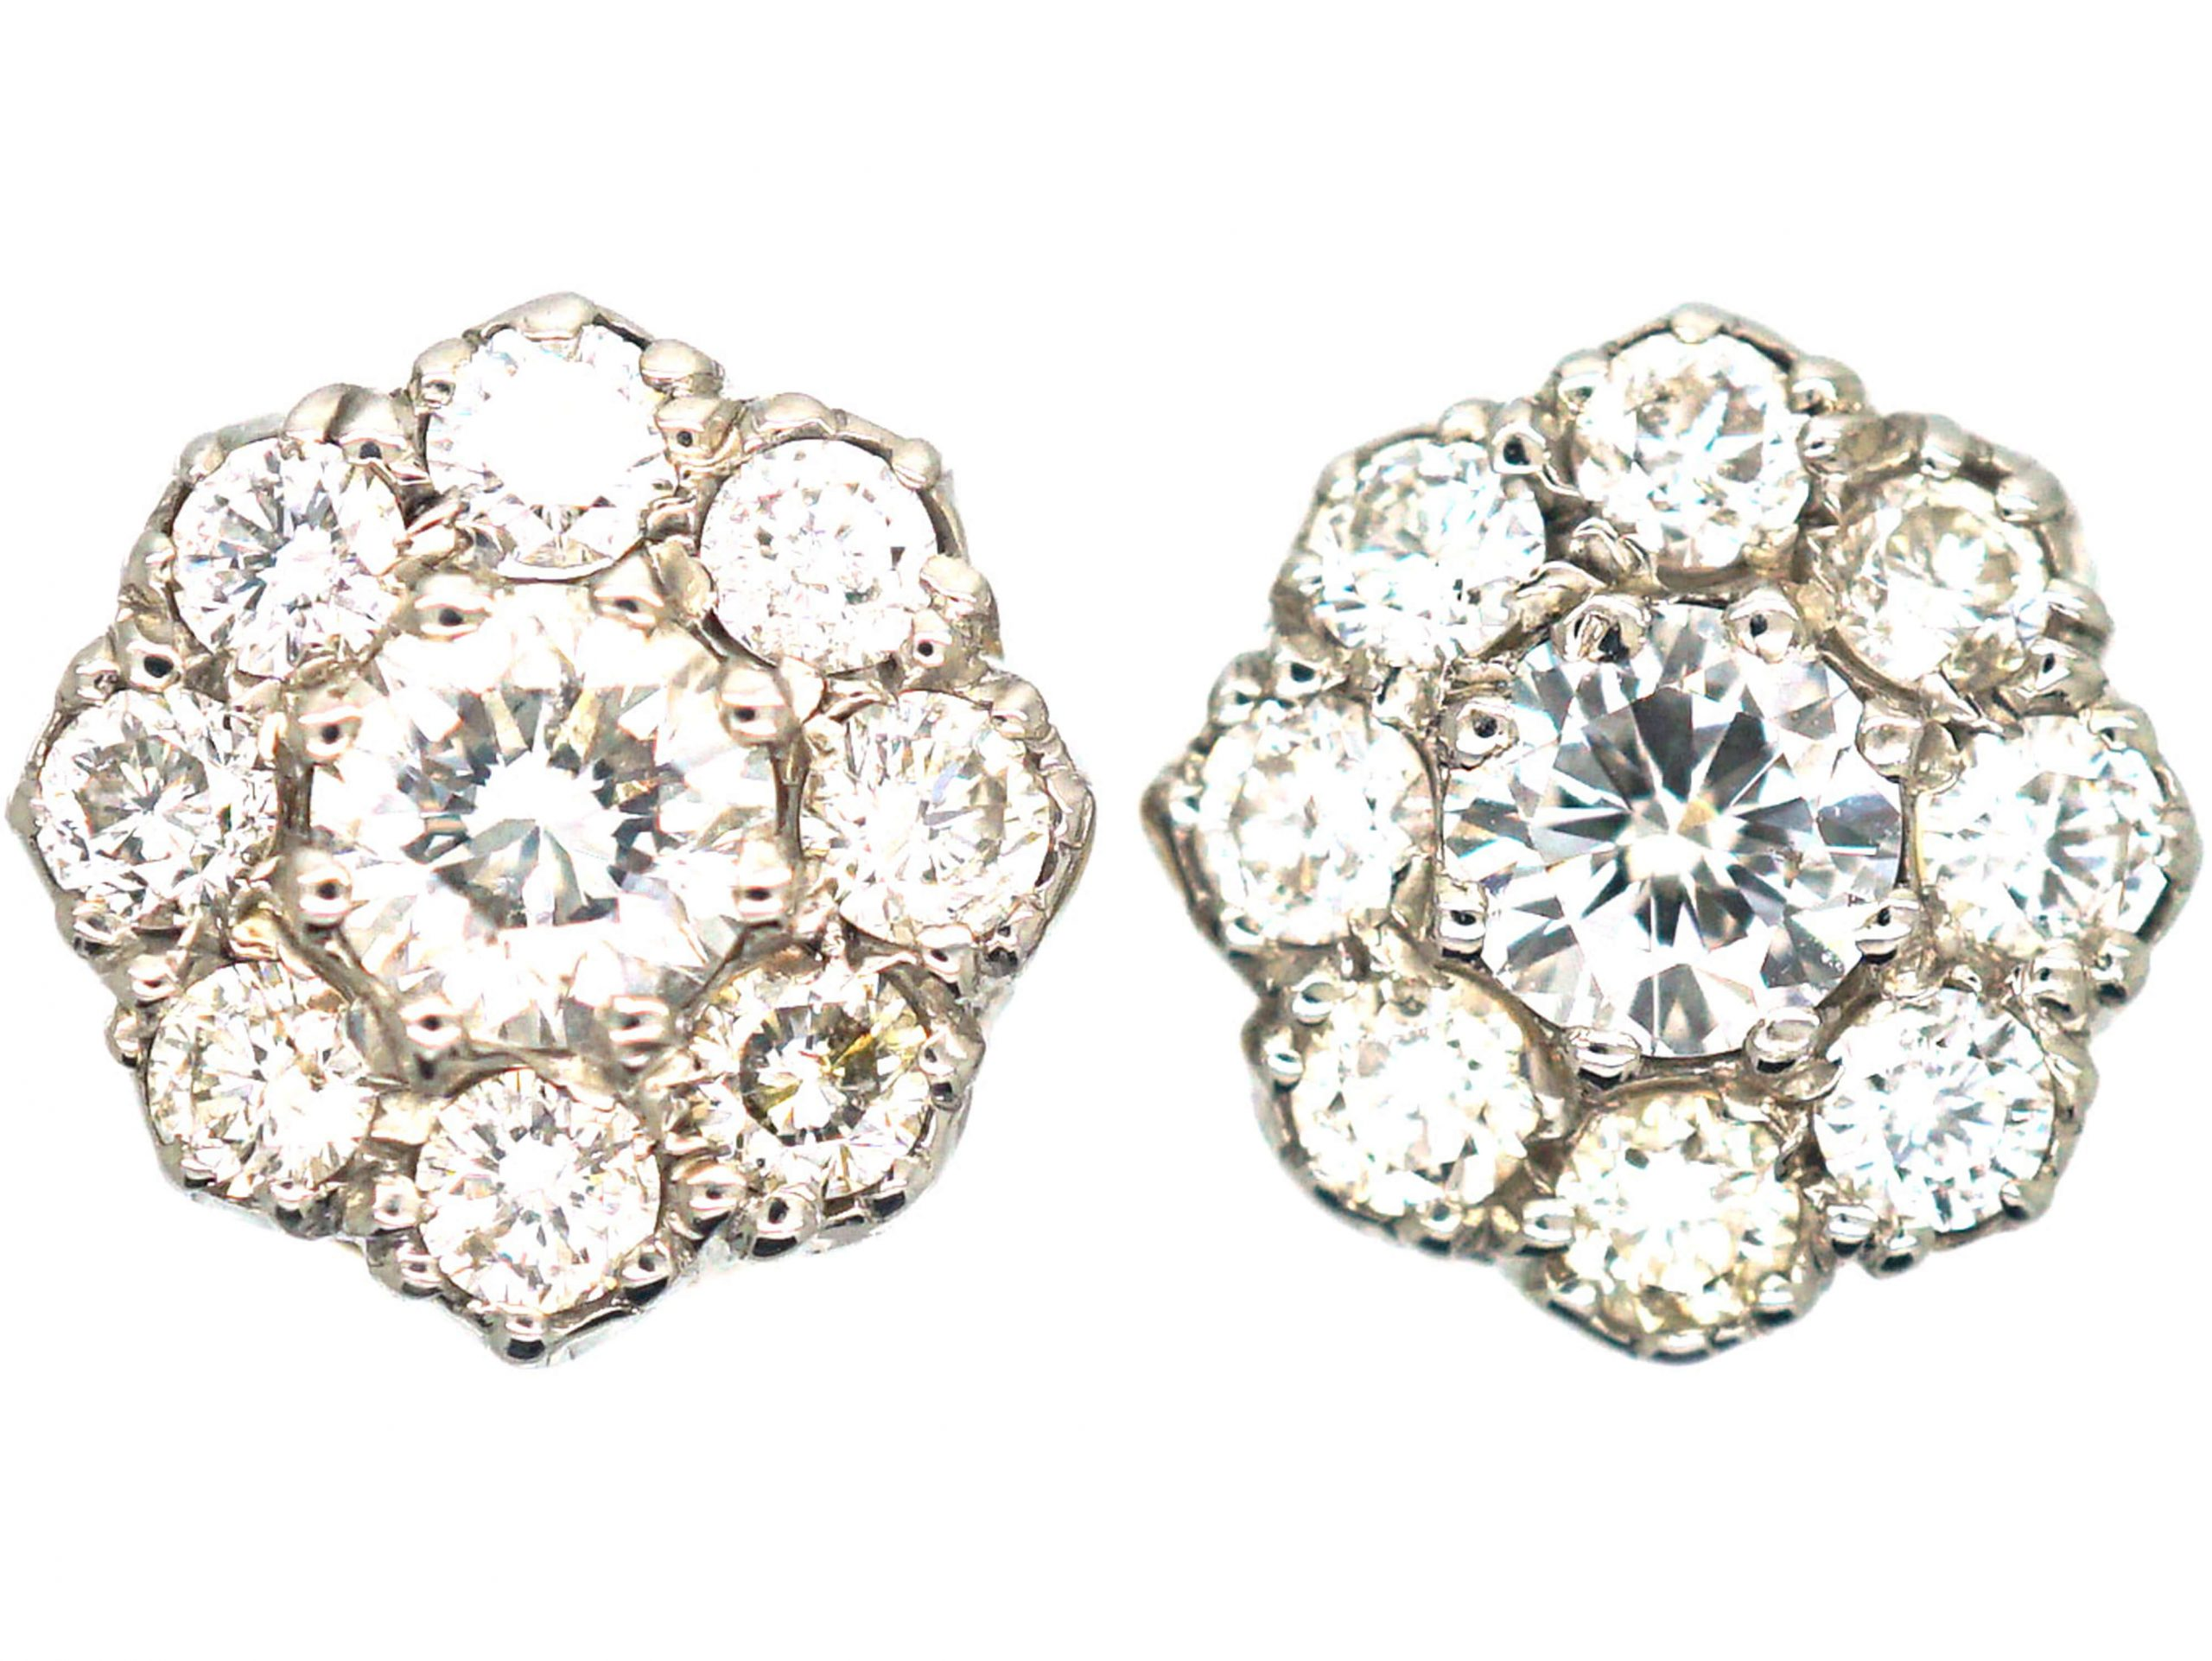 18ct White & Yellow Gold & Diamond Daisy Cluster Earrings